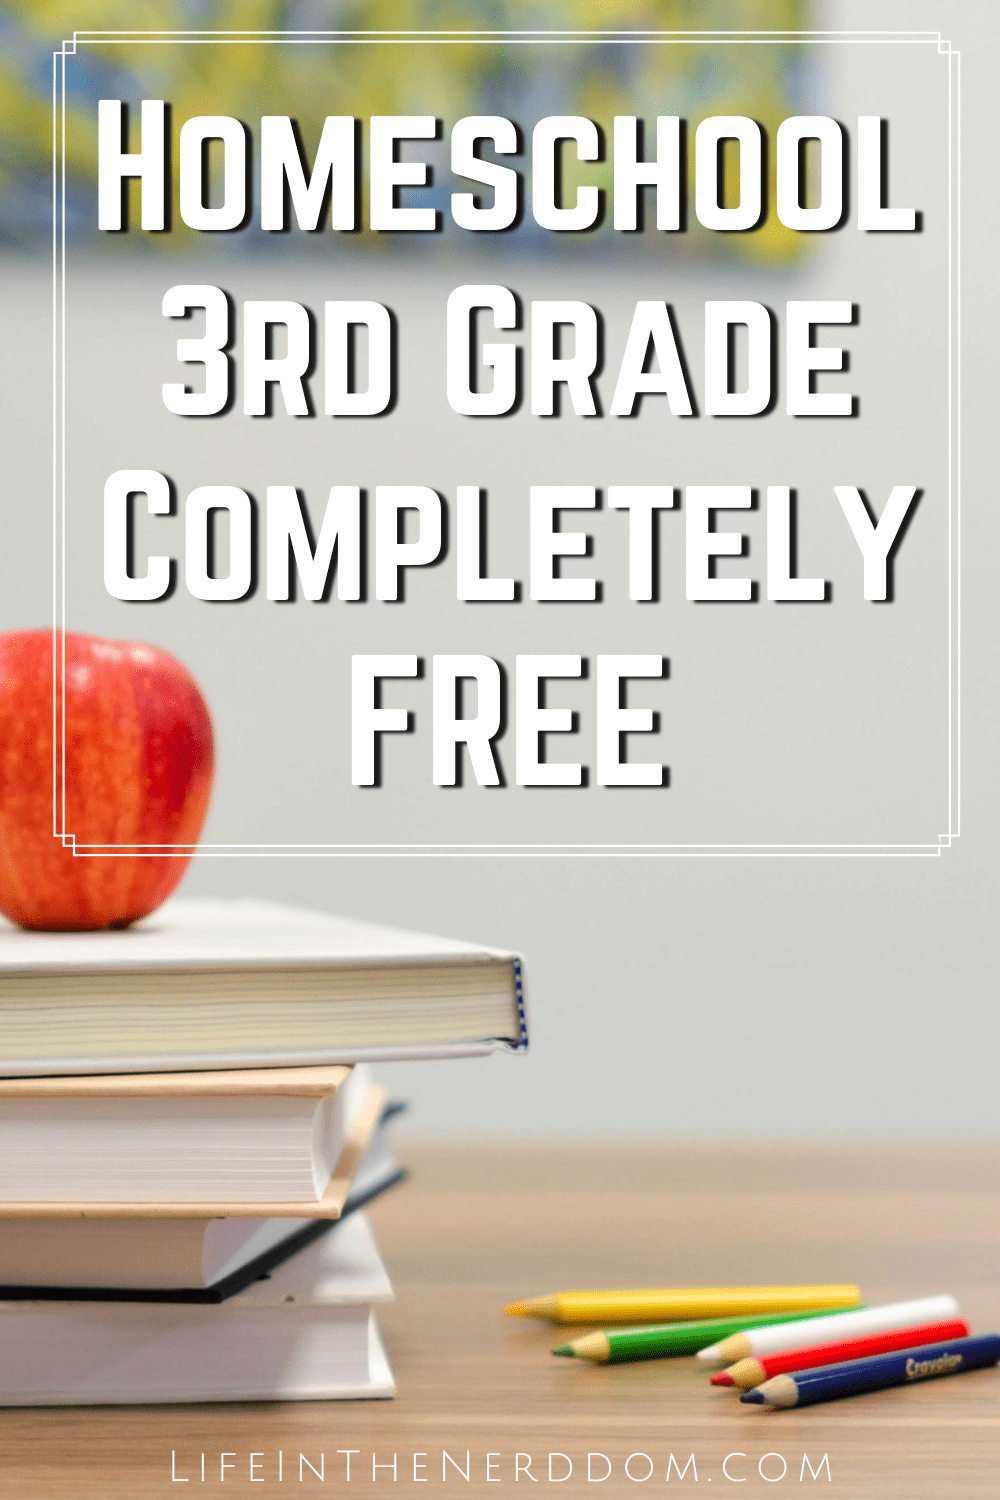 Homeschool Third Grade Completely Free at LifeInTheNerddom.com